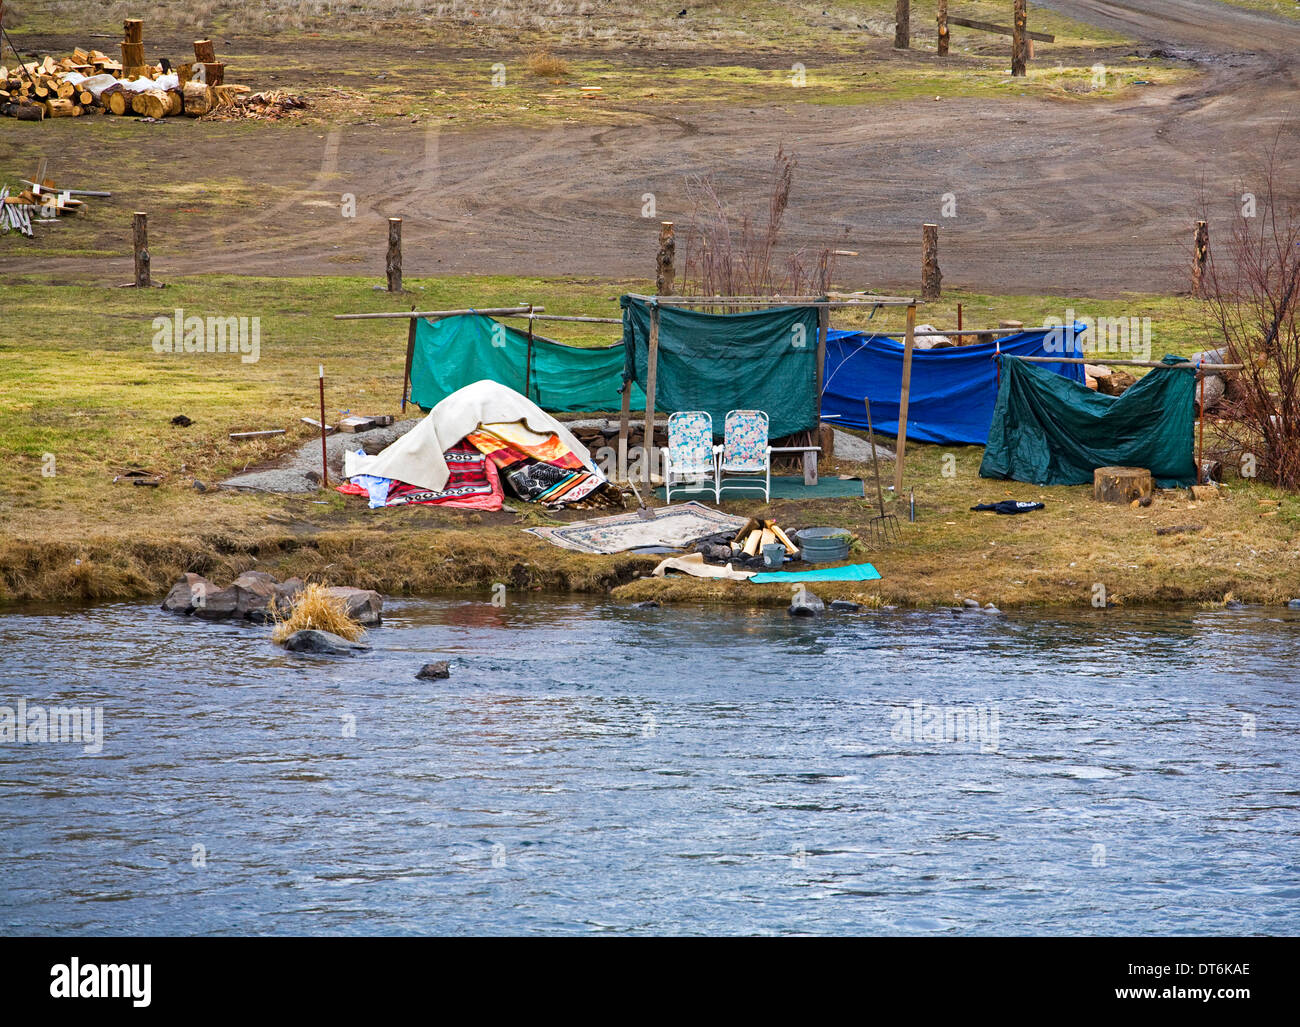 An Indian sweat lodge on the Warms Springs Indian Reservation on the banks of the Deschutes River, Oregon - Stock Image